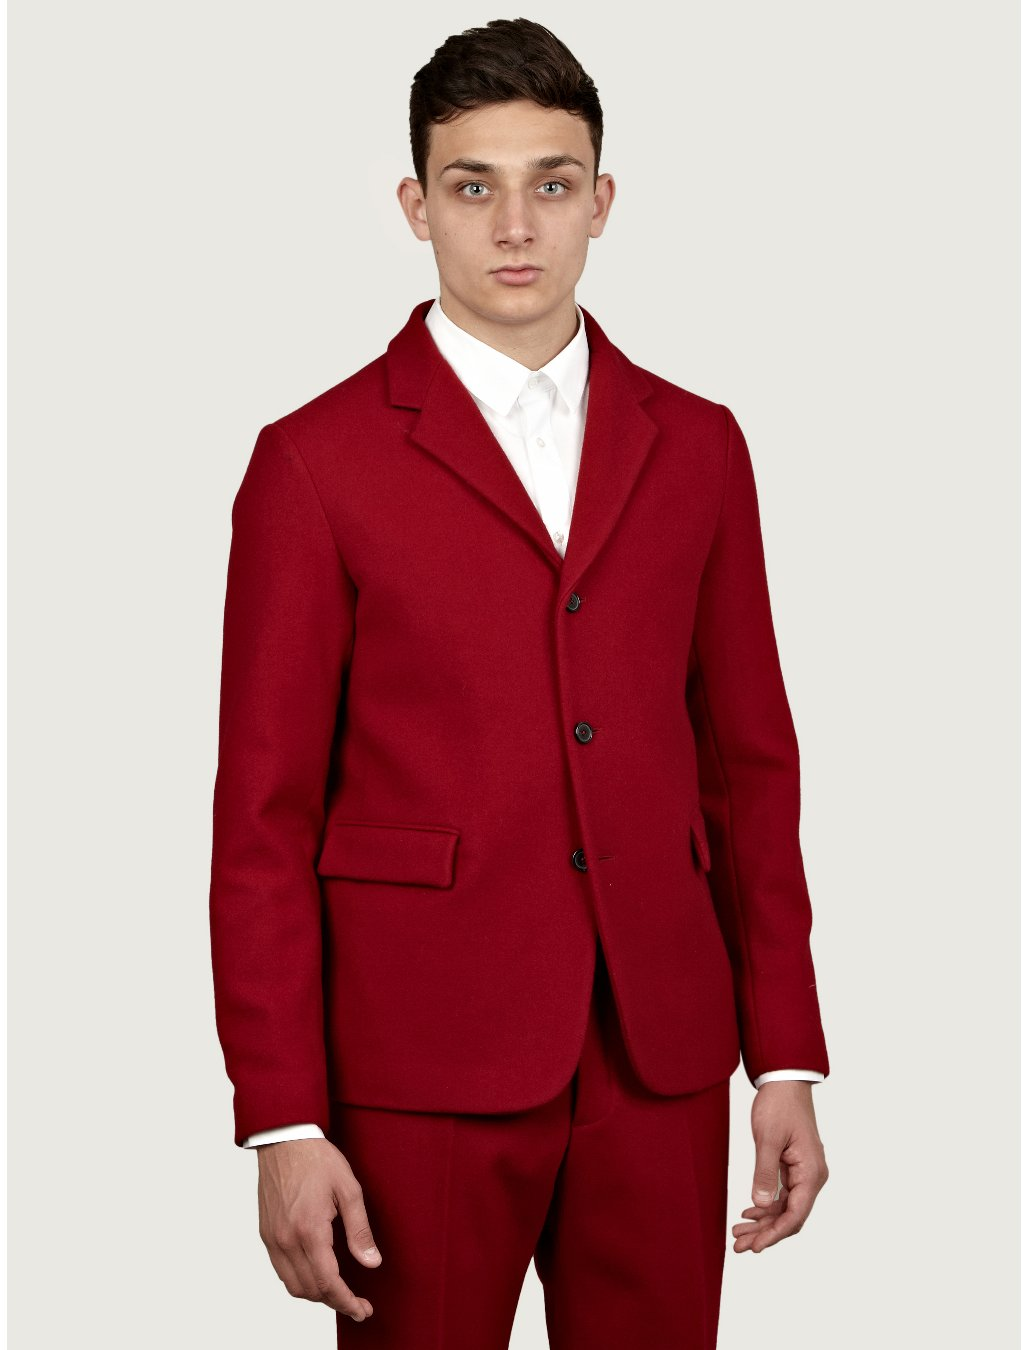 jil sander mens britta woollen jacket in red for men lyst. Black Bedroom Furniture Sets. Home Design Ideas